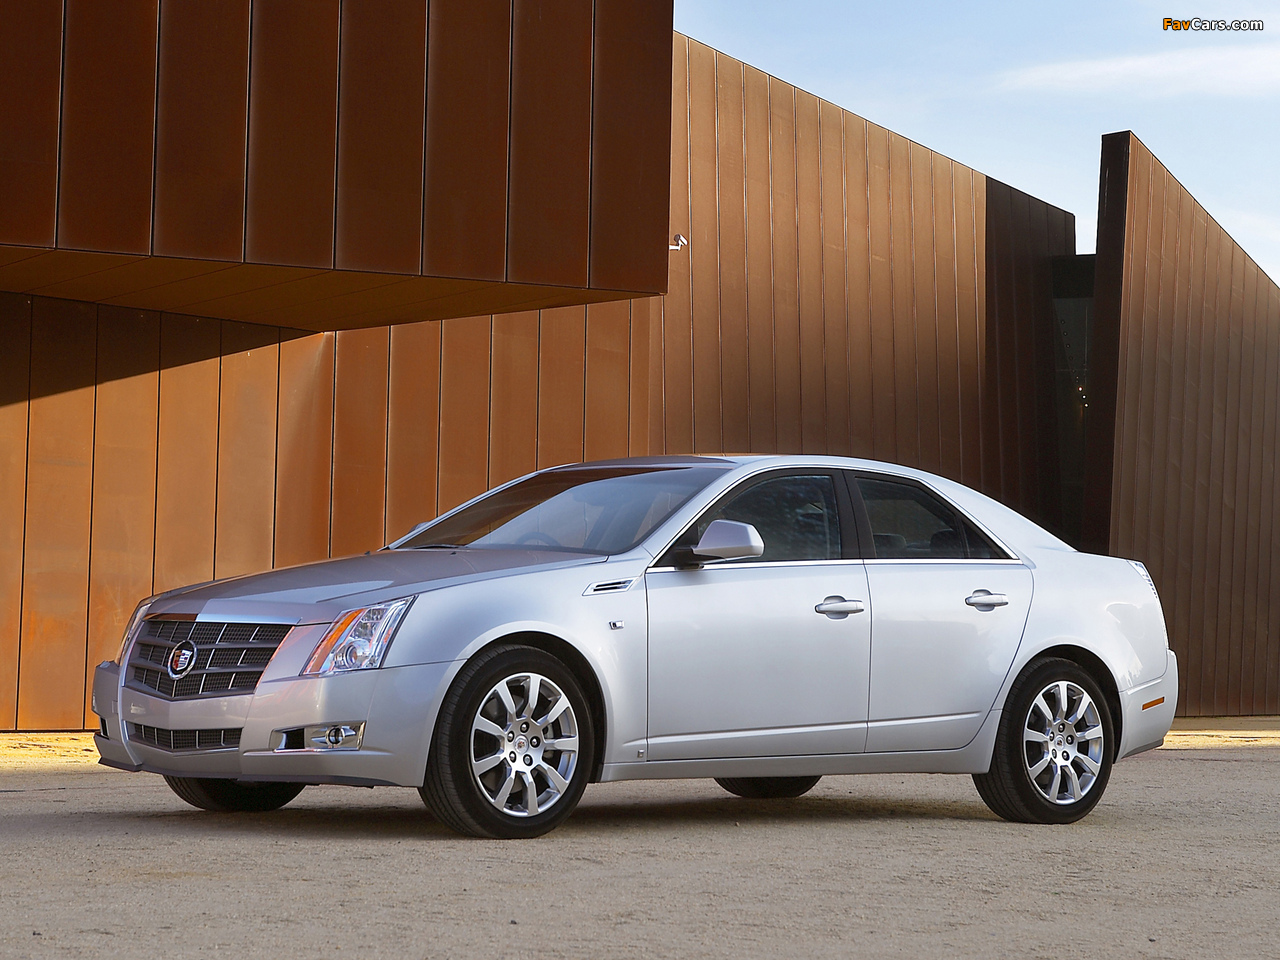 Cadillac CTS UK-spec 2008 images (1280 x 960)